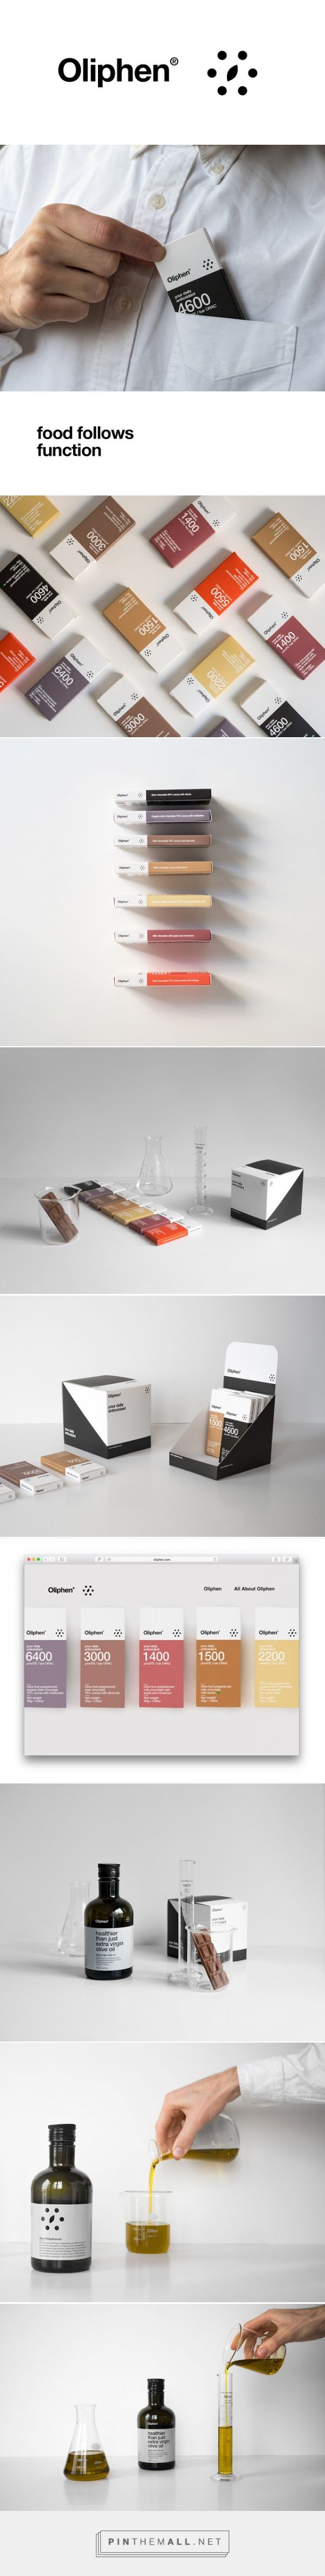 Oliphen - Food Follows Function packaging designed by Typical.​ - http://www.packagingoftheworld.com/2015/12/oliphen-food-follows-function.html